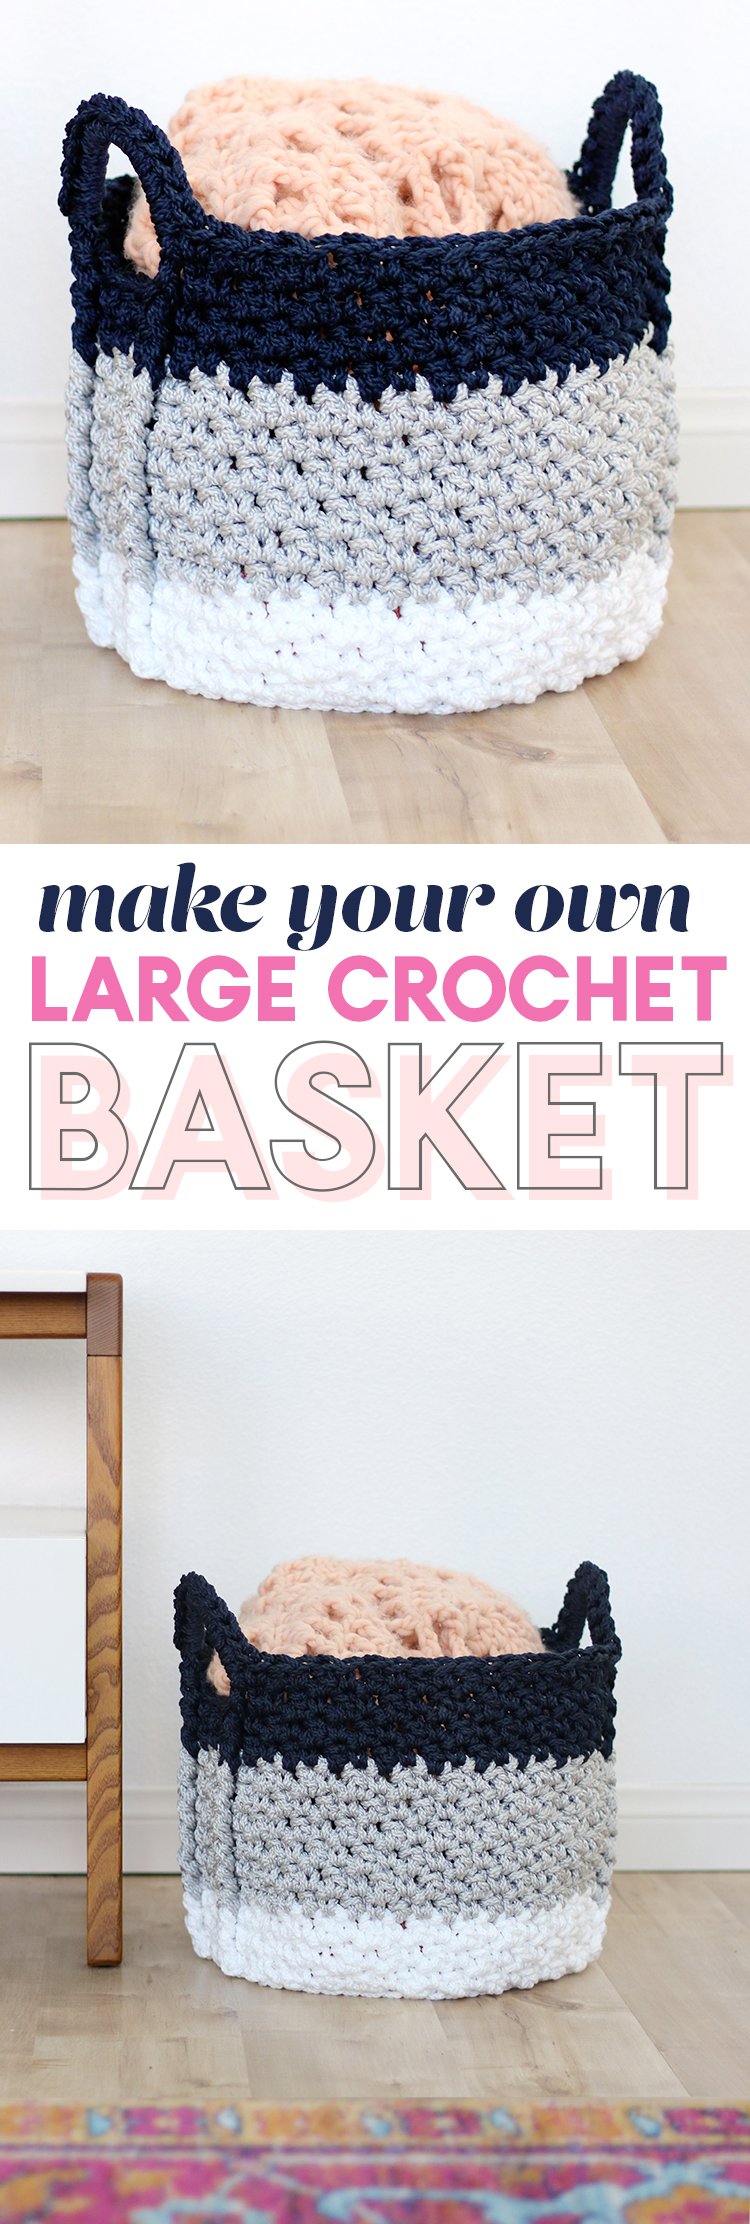 free crochet basket pattern - large crochet basket with handles